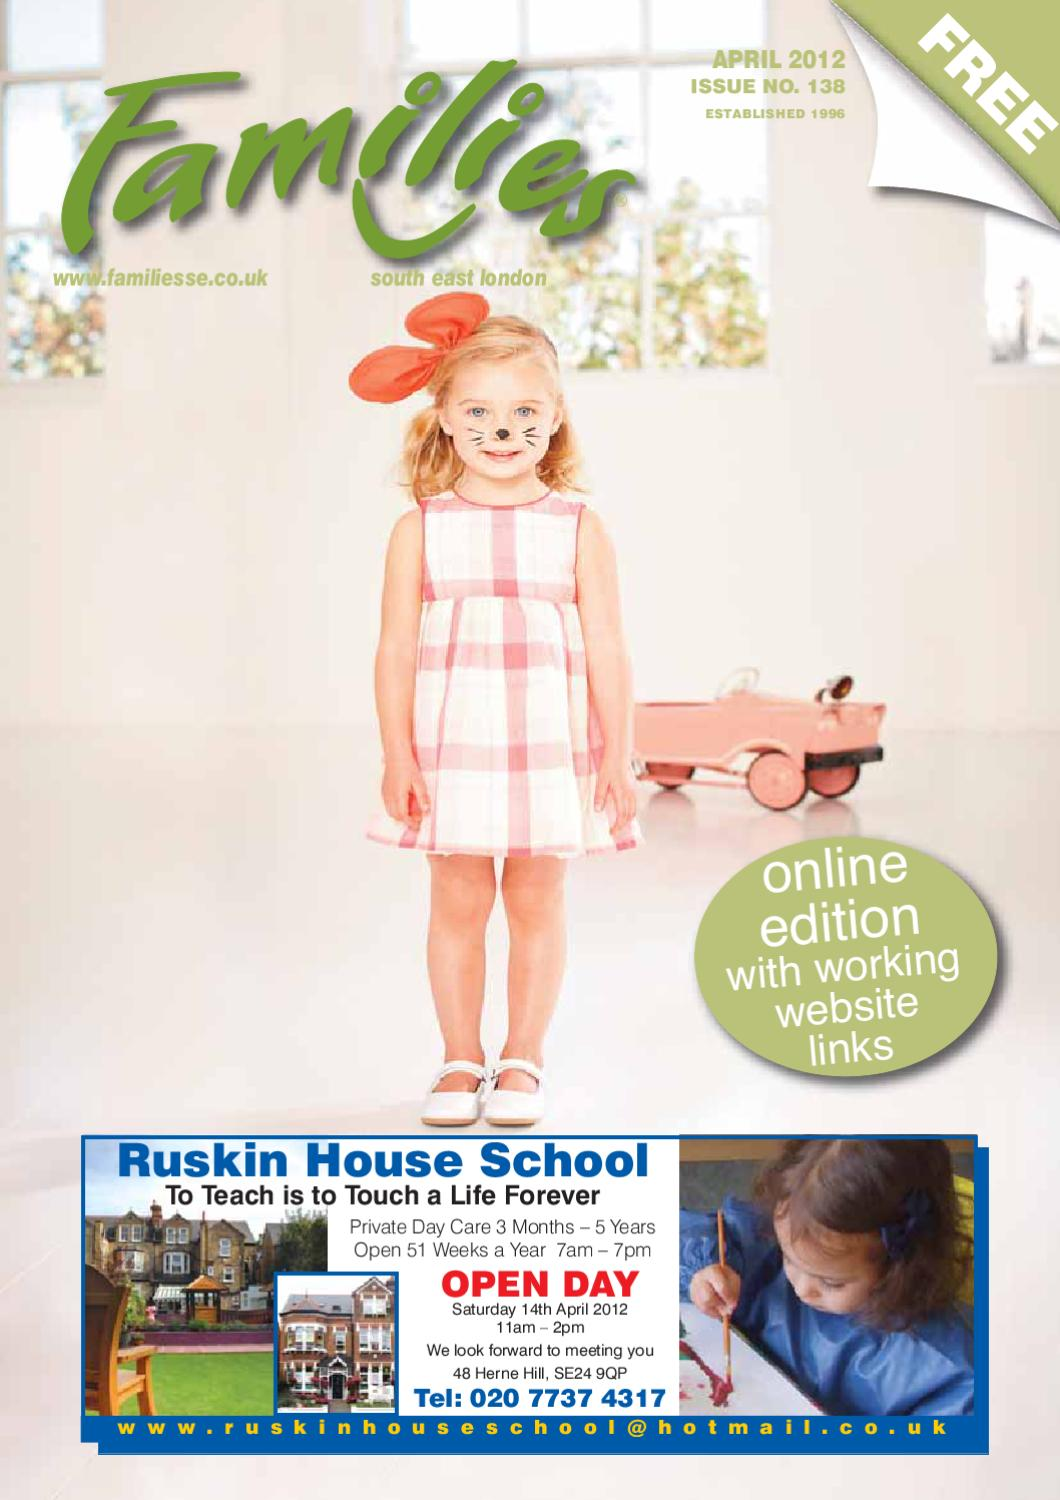 15b22fedea1 Families SE April 2012 issue 138 by Families Magazine - issuu